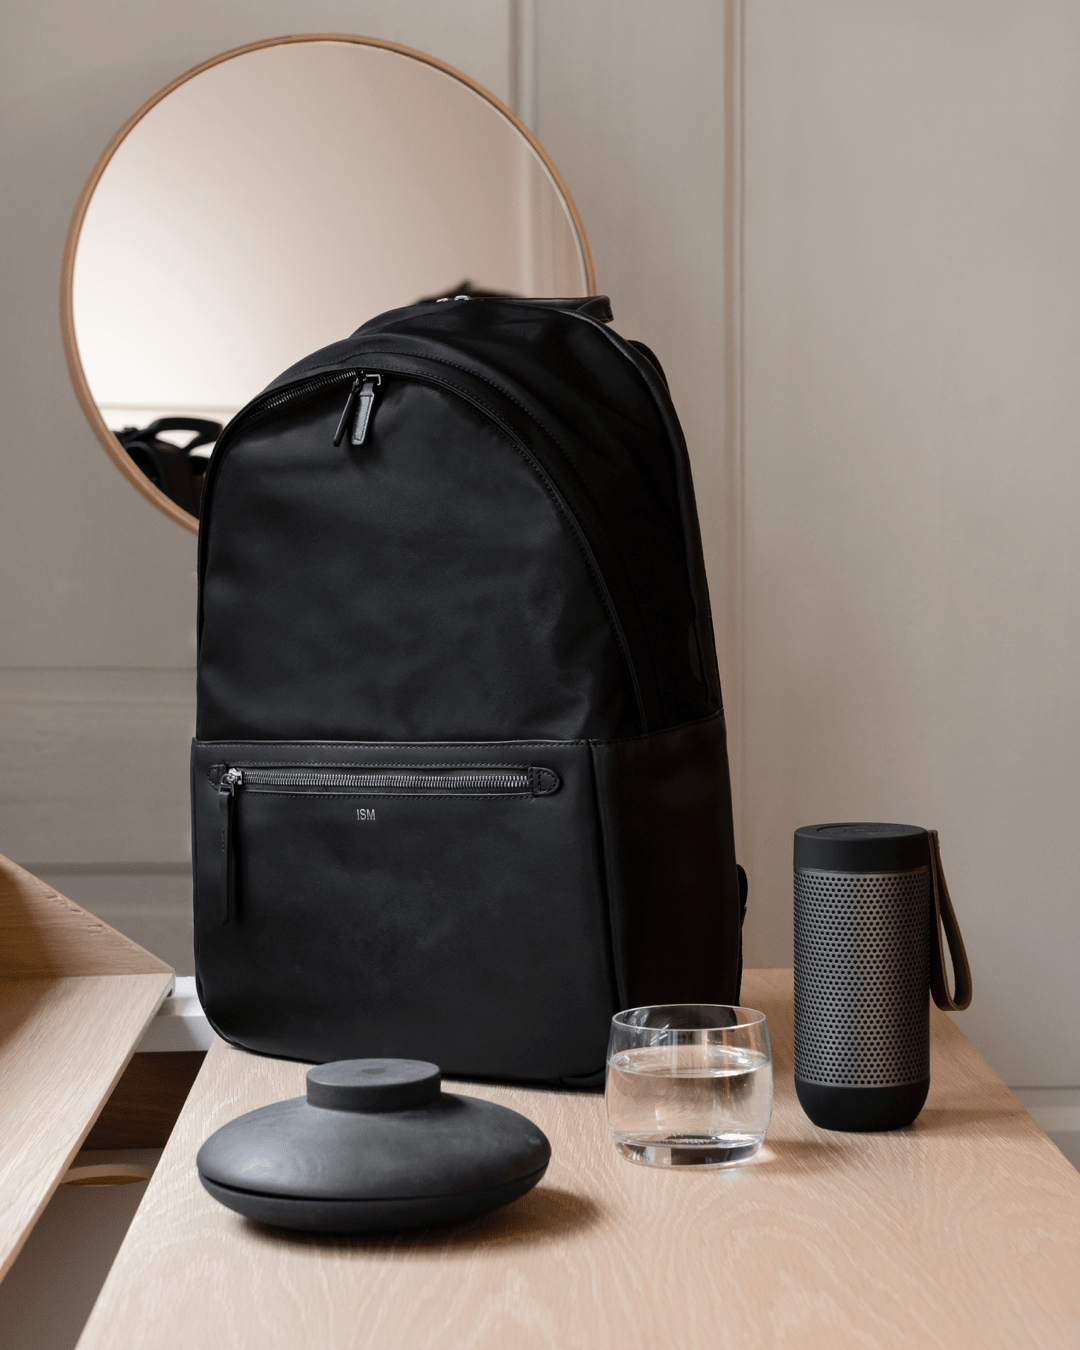 b46c76c94047 ISM  The Classic (Black) - Leather Laptop Backpack